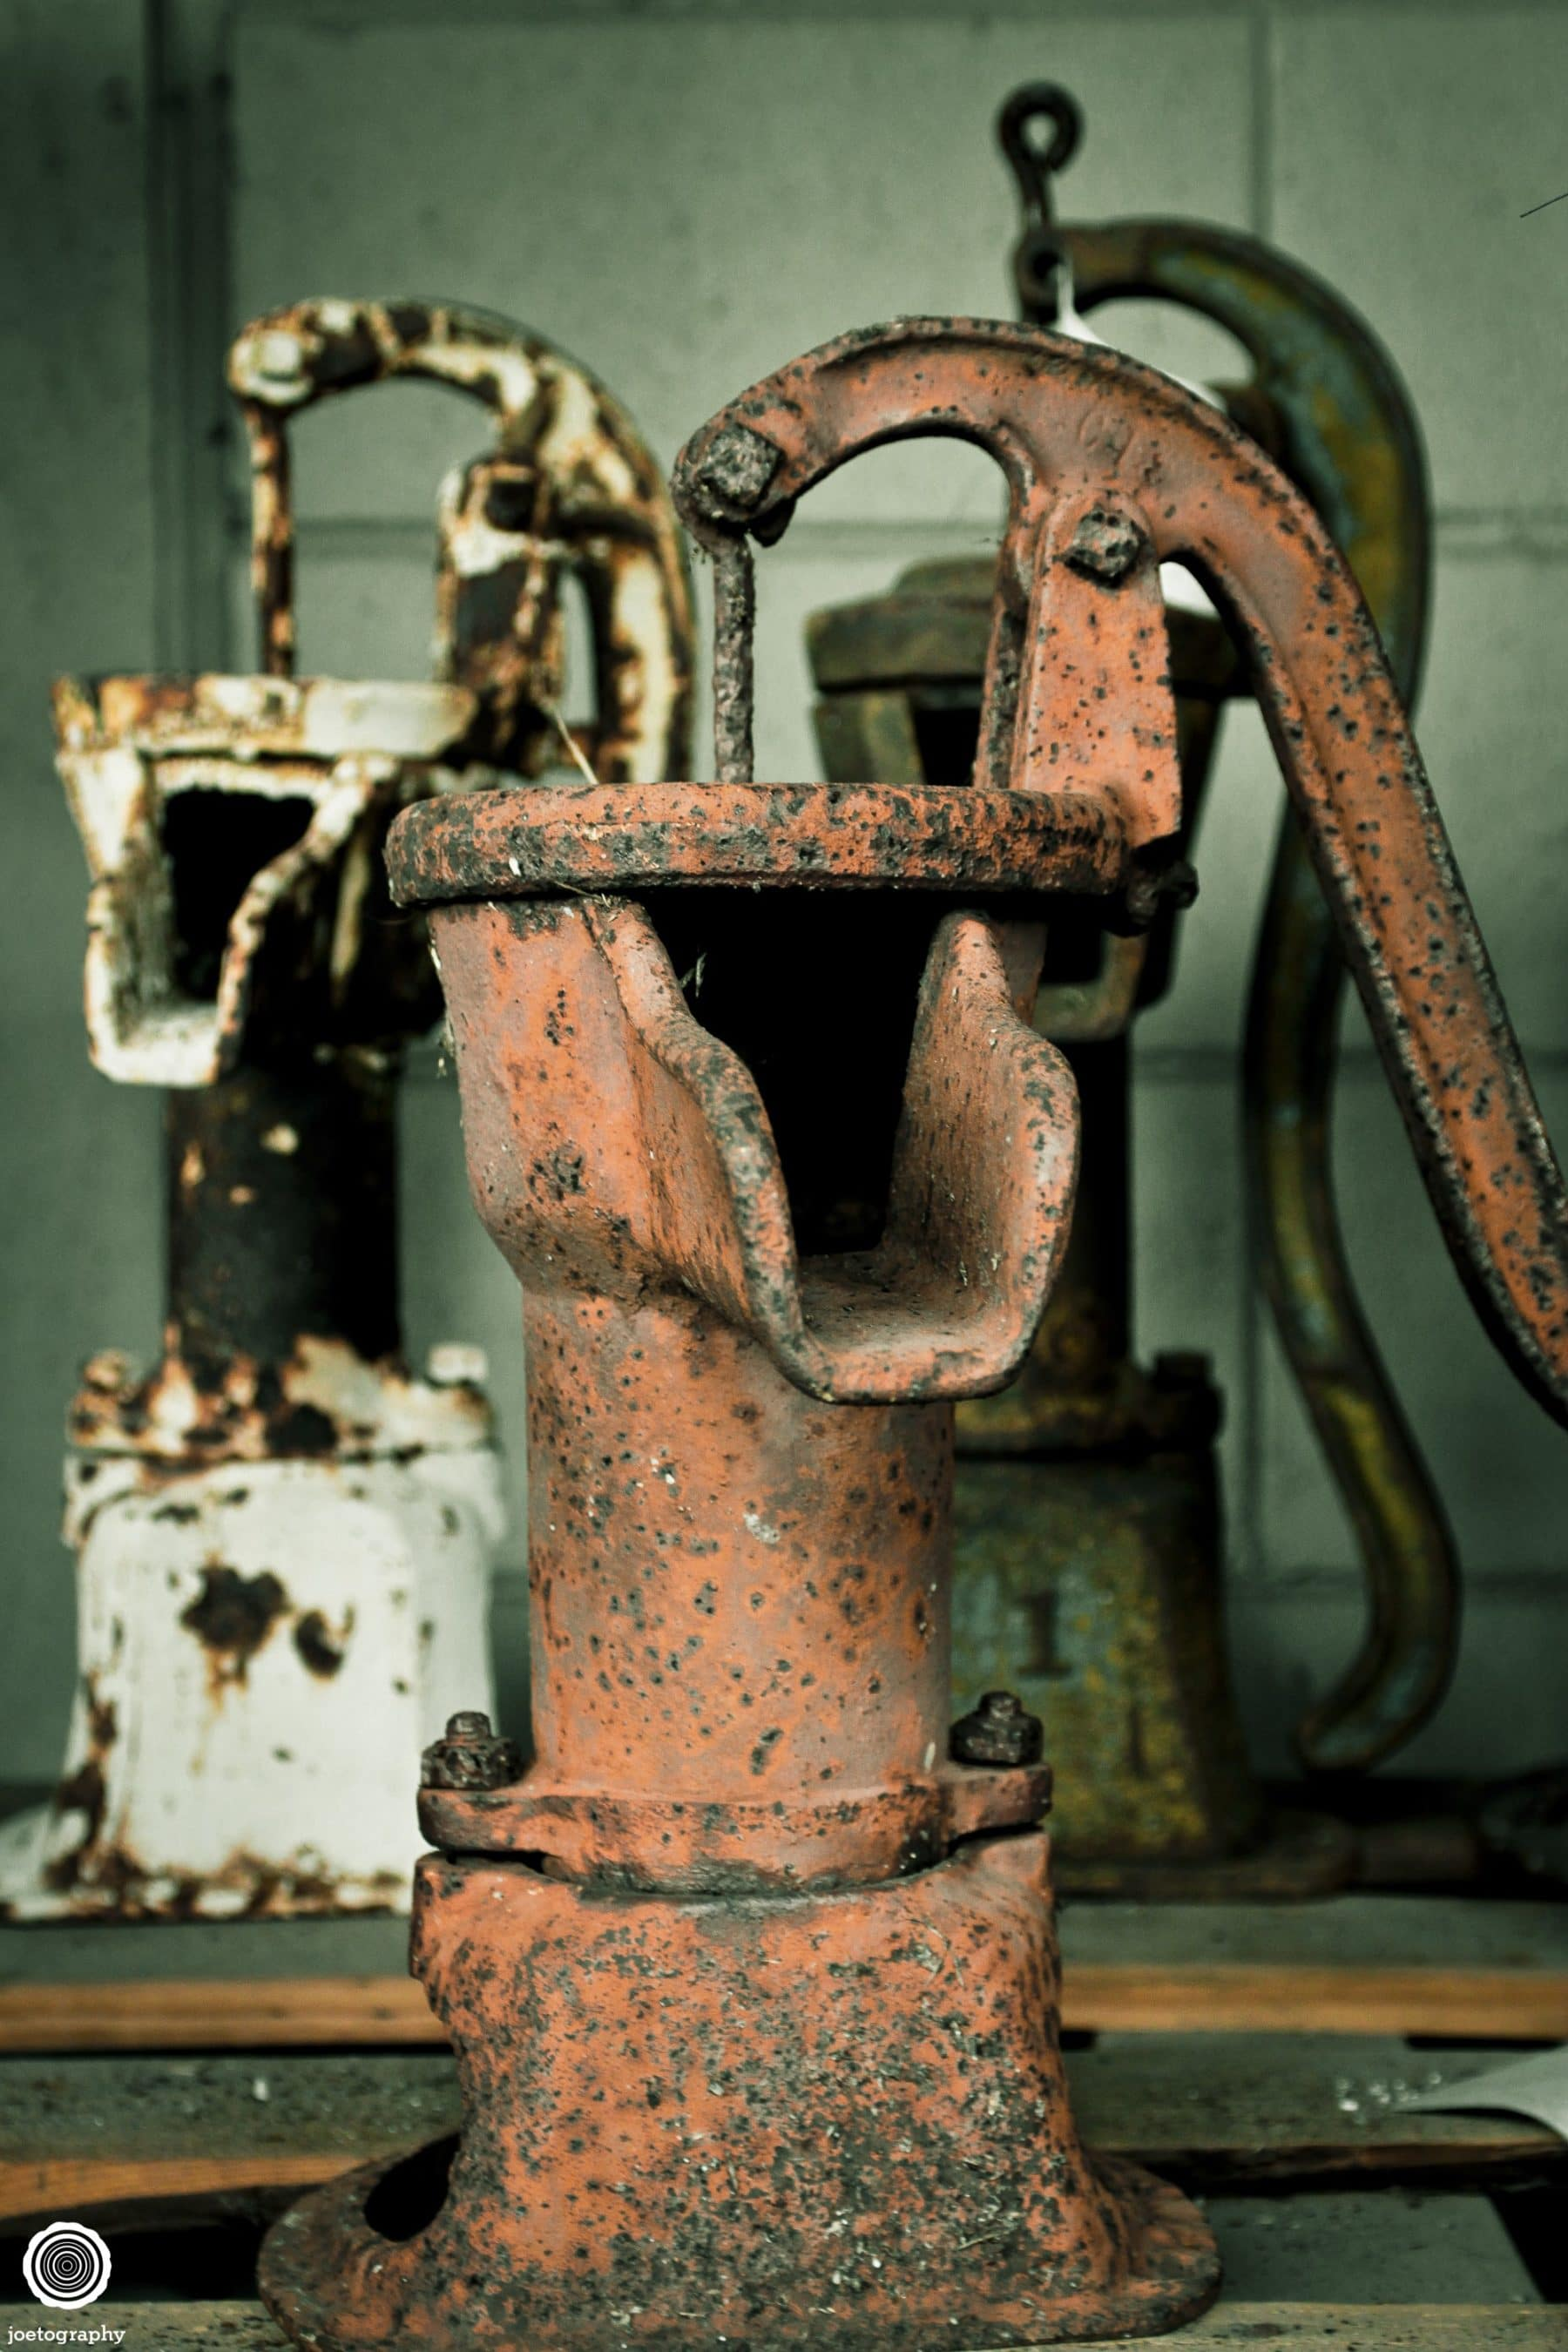 Docs-Salvage-Architectural-Photography-Indianapolis-21